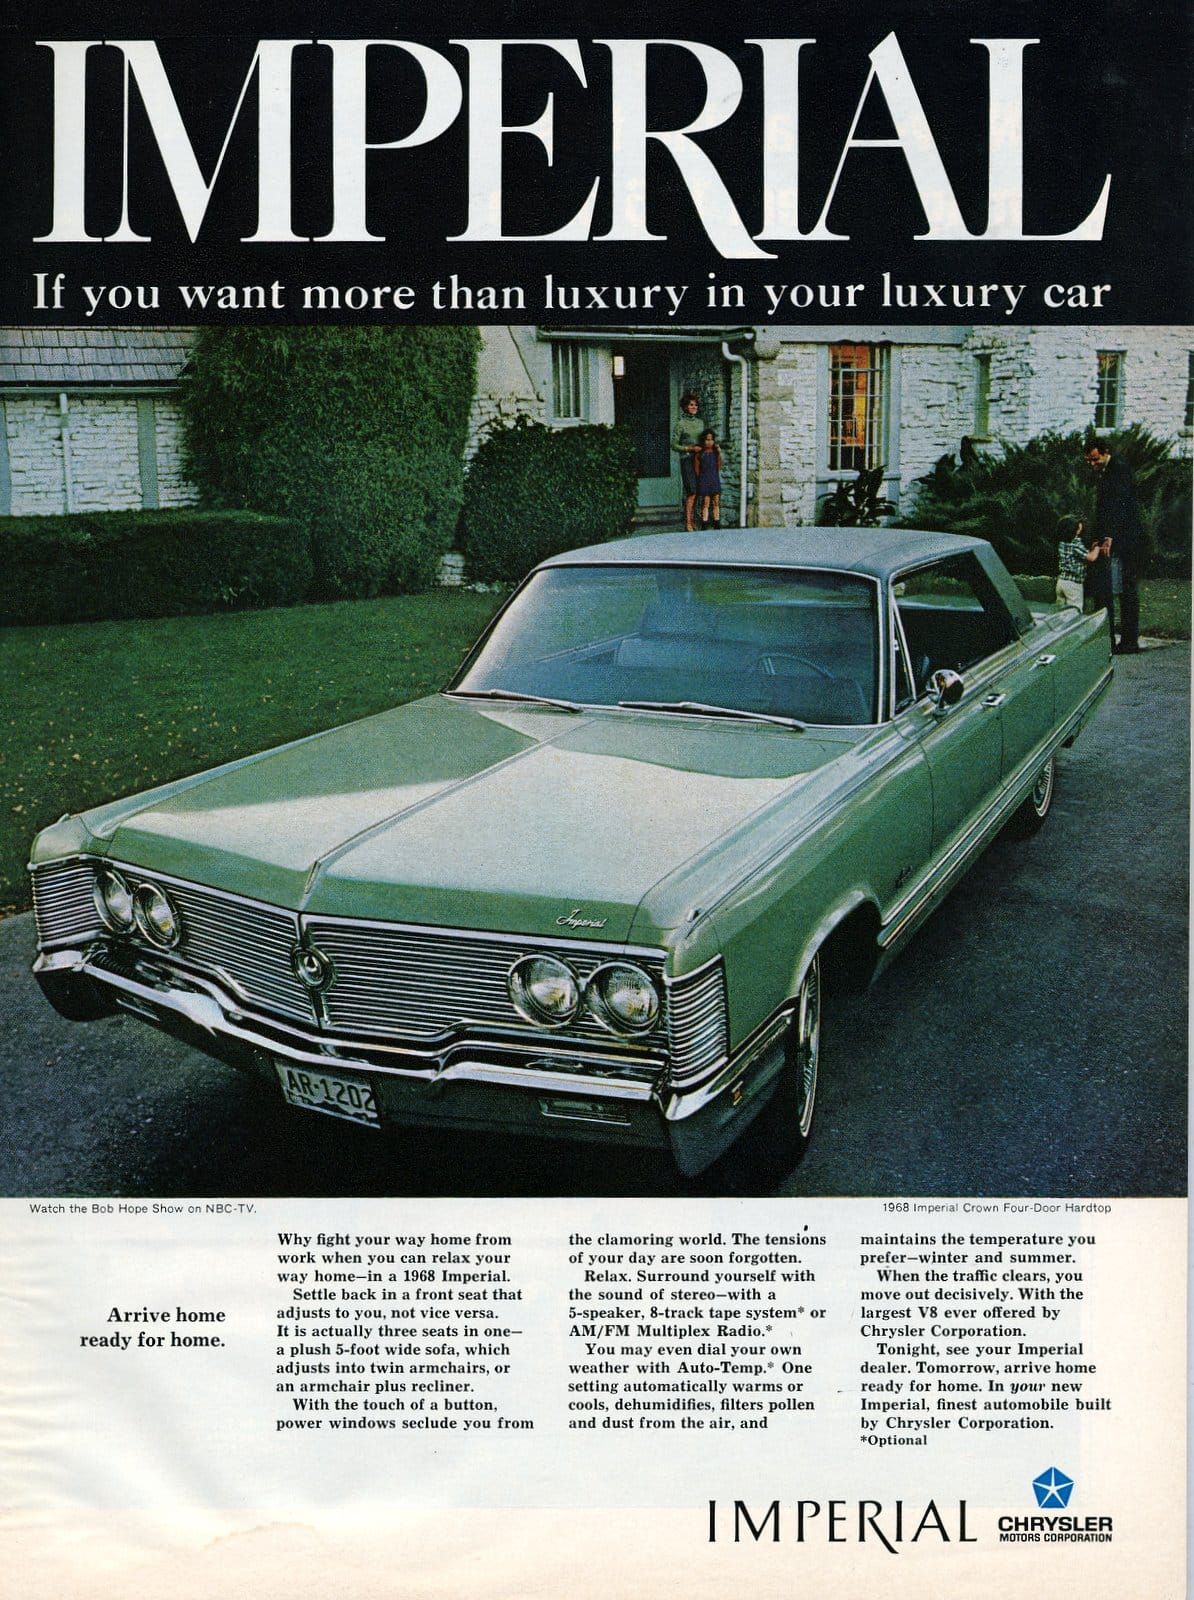 1968 Chrysler Imperial - vintage classic car ad (3)